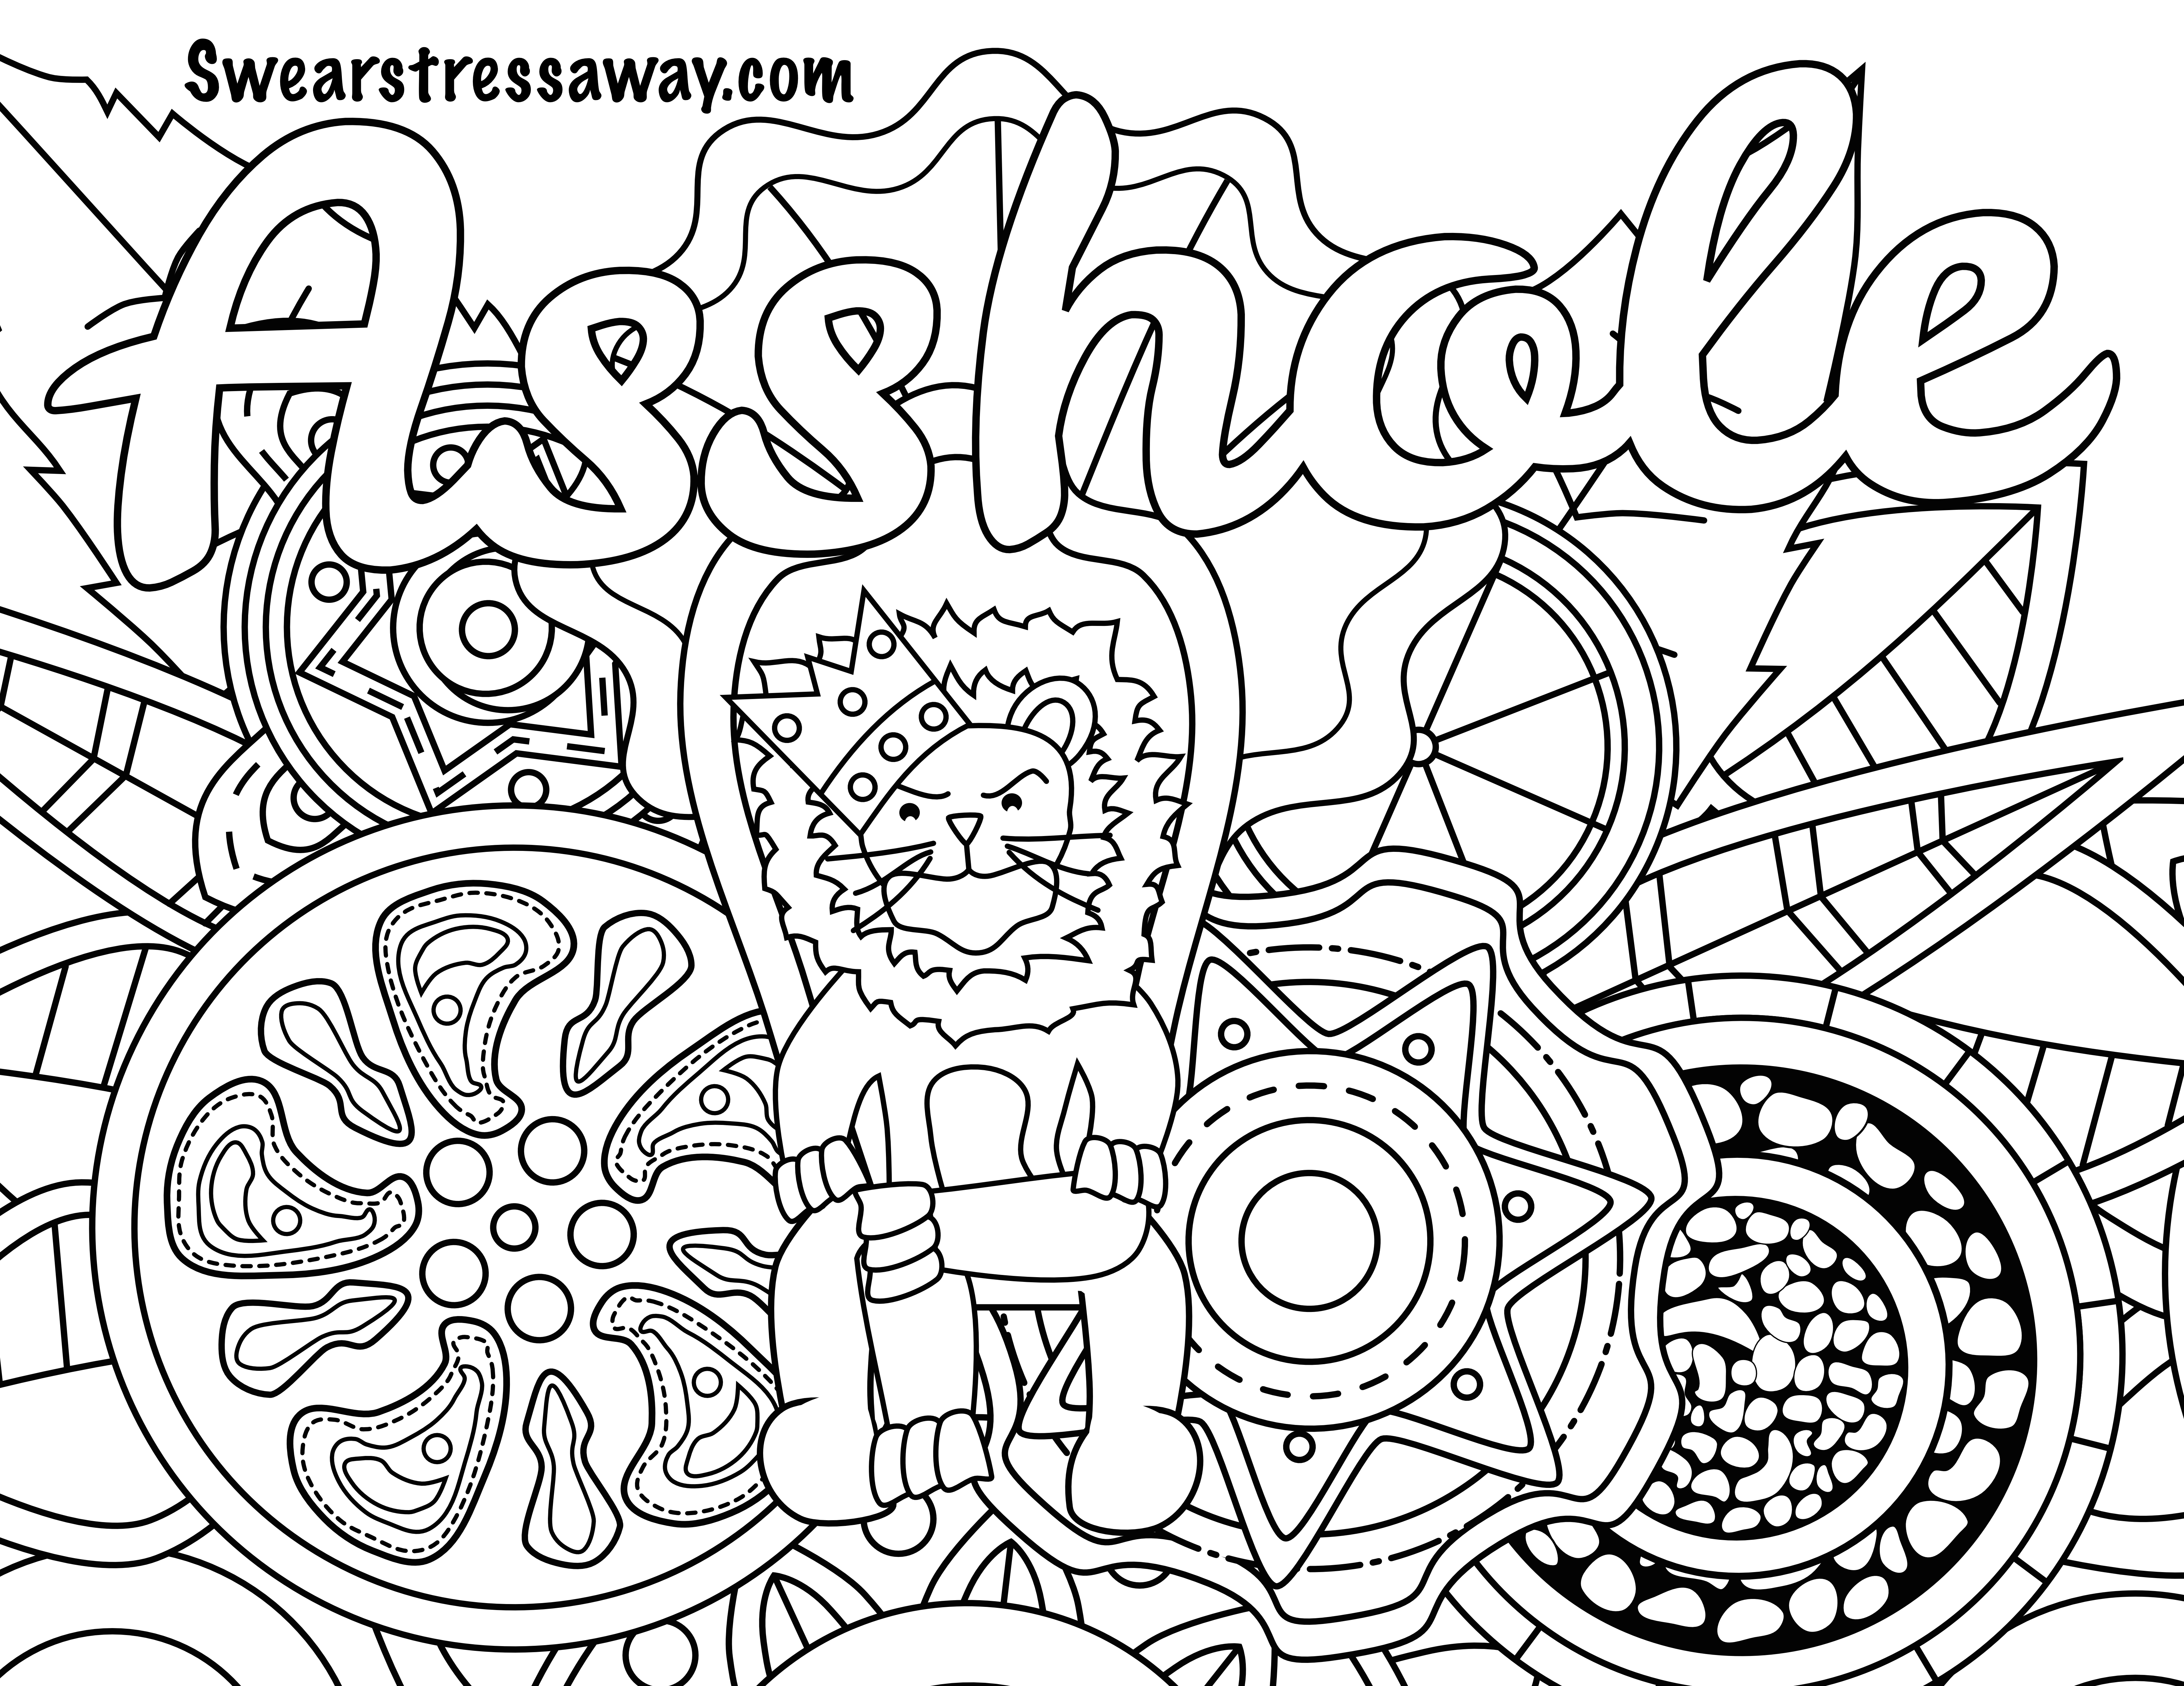 Pin on adult coloring | free printable coloring pages for adults only swear words